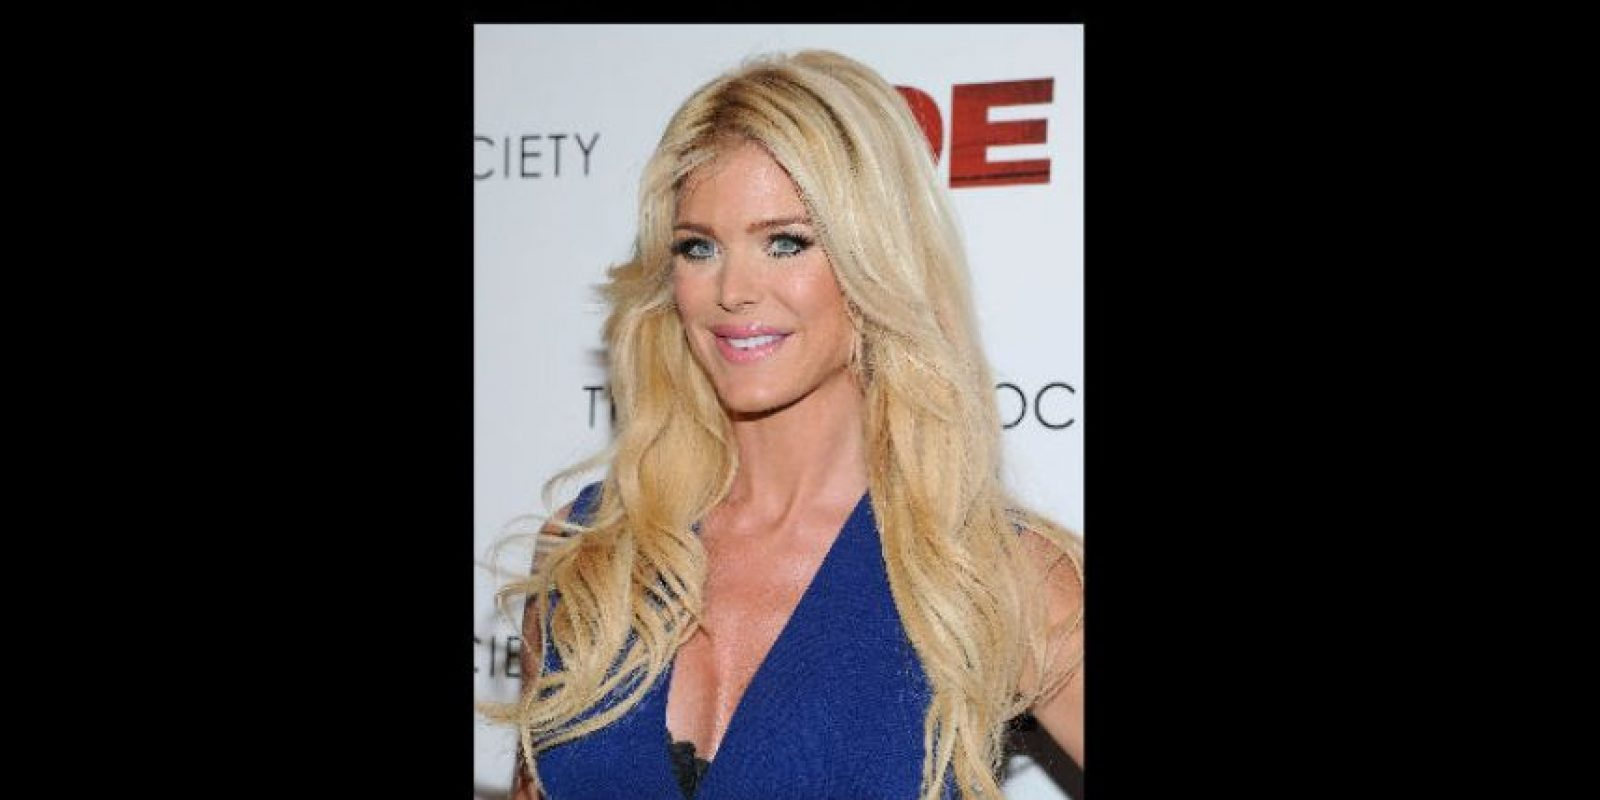 Victoria Silvstedt Foto: Getty Images